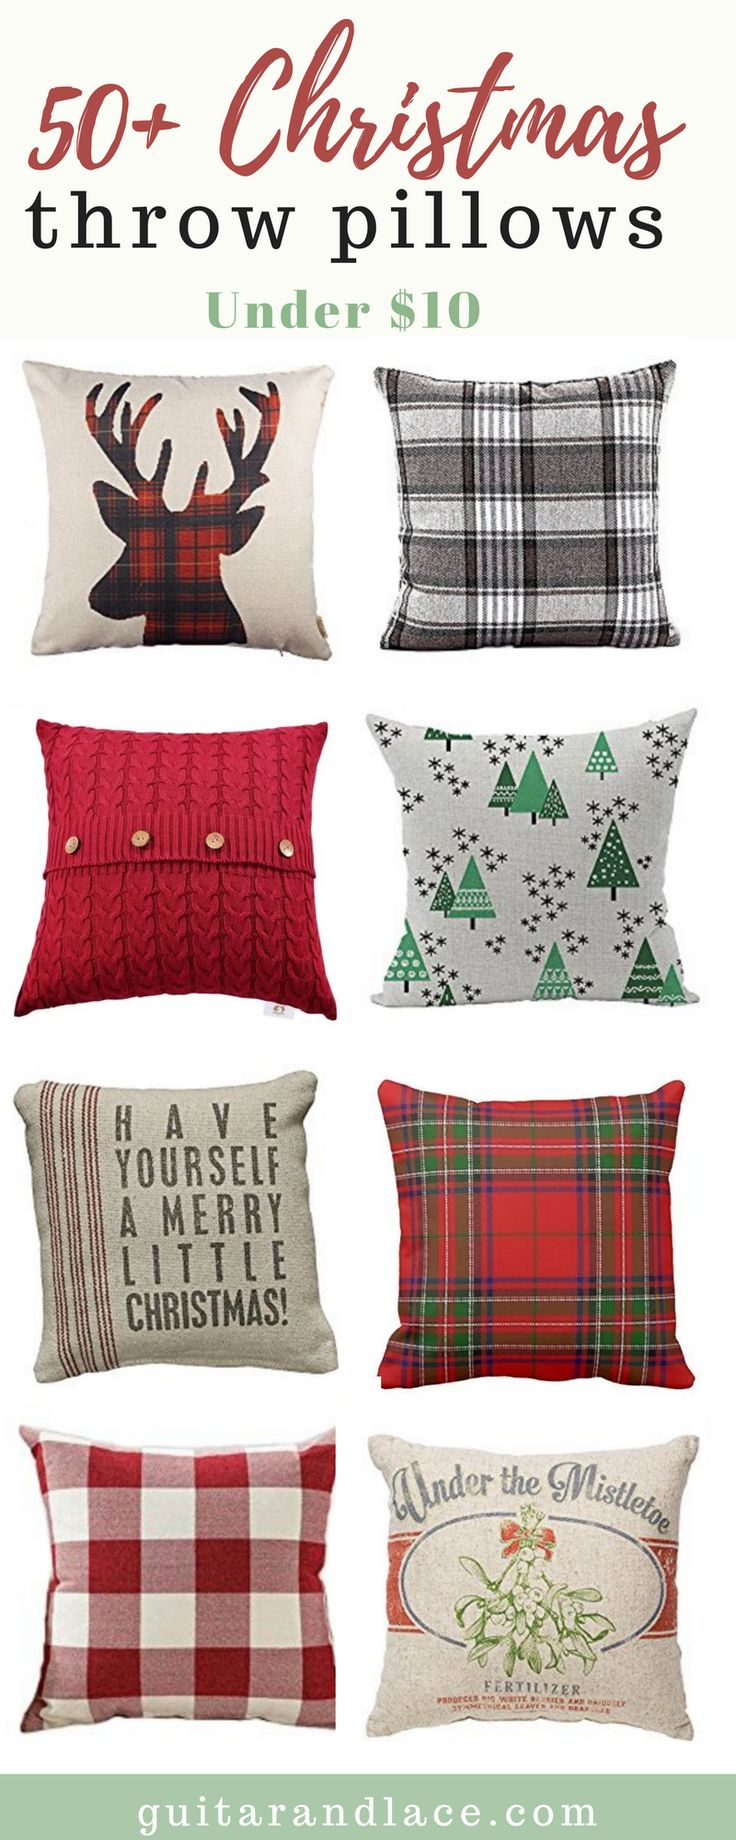 Christmas Throw pillows for the thrifty spenders! Pillows for under $10. Farmhouse Christmas Decor, Hygge Christmas Decor, Scandinavian Christmas Decor, Blue and White Christmas, traditional christmas